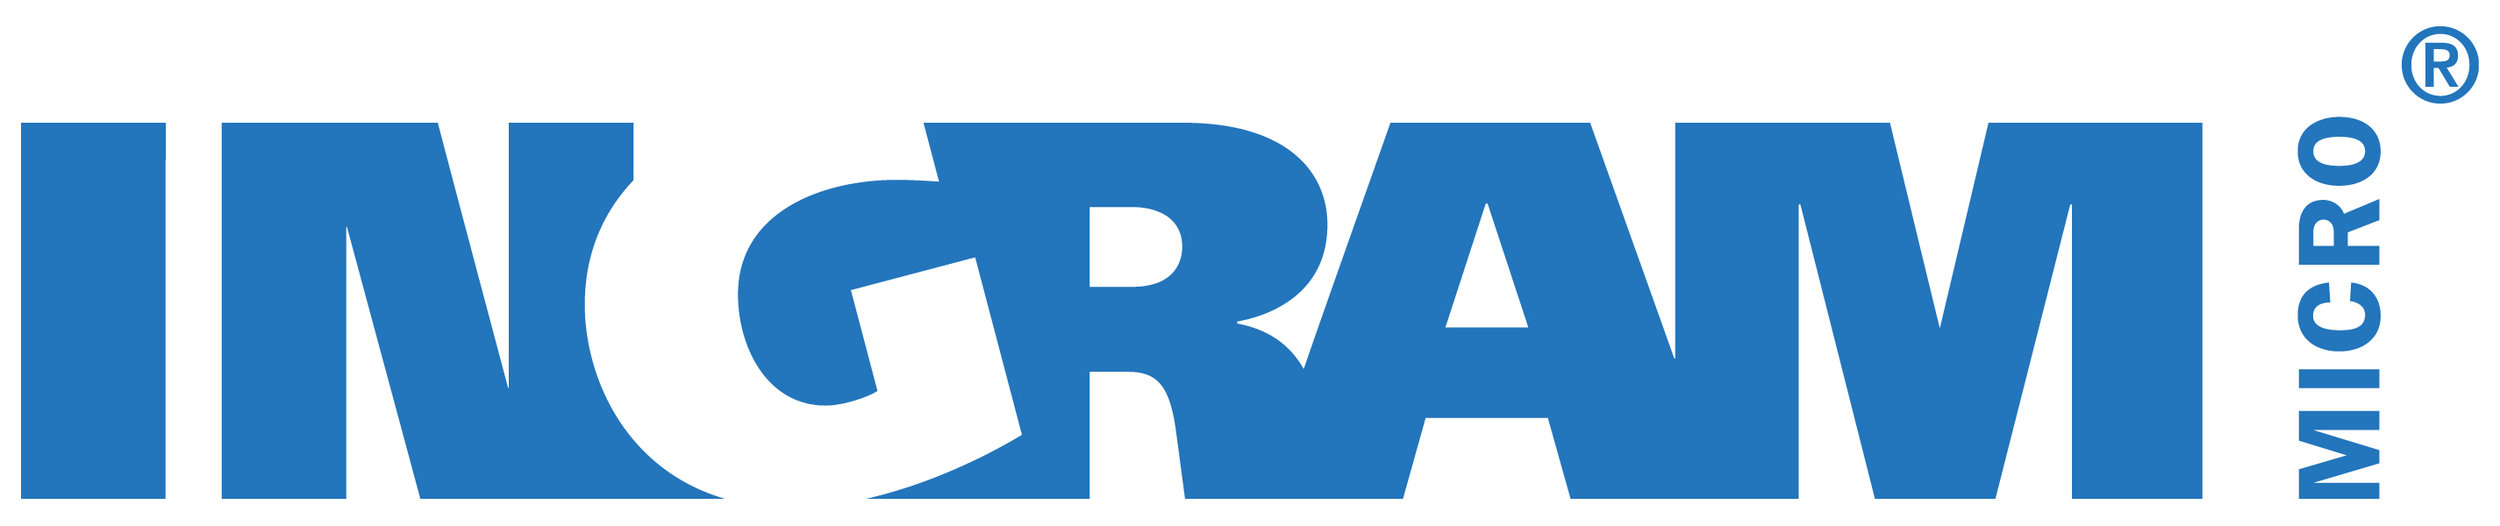 Ingram_Micro_Wordmark_Blue_HiRes.jpg